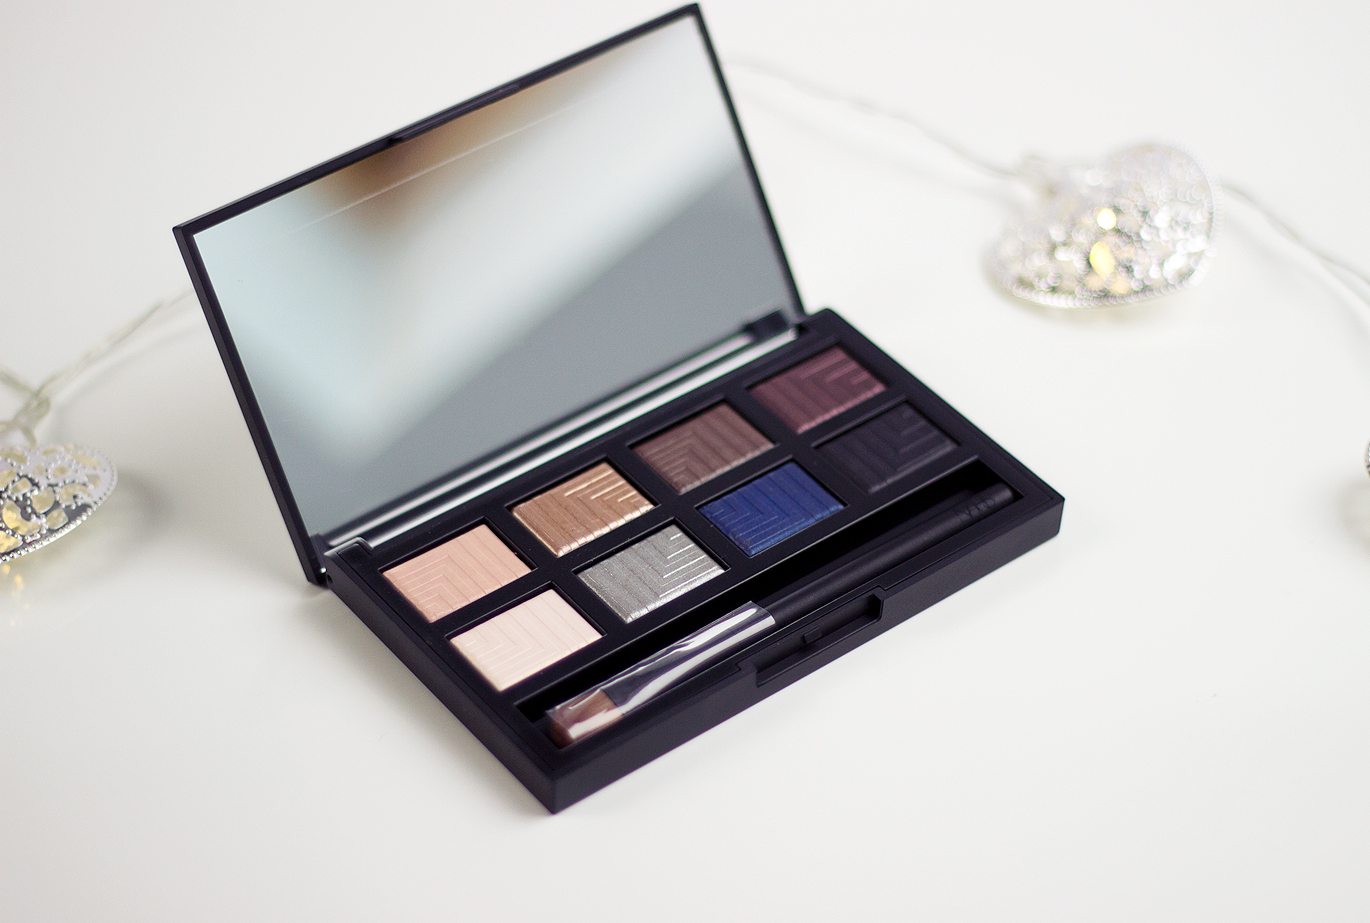 Nars Dual Intensity Eyeshadow Palette, Narsissist Dual Intensity Eyeshadow Palette, Nars Dual Intensity Eyeshadow Palette Review, Narsissist Dual Intensity Eyeshadow Palette Review,